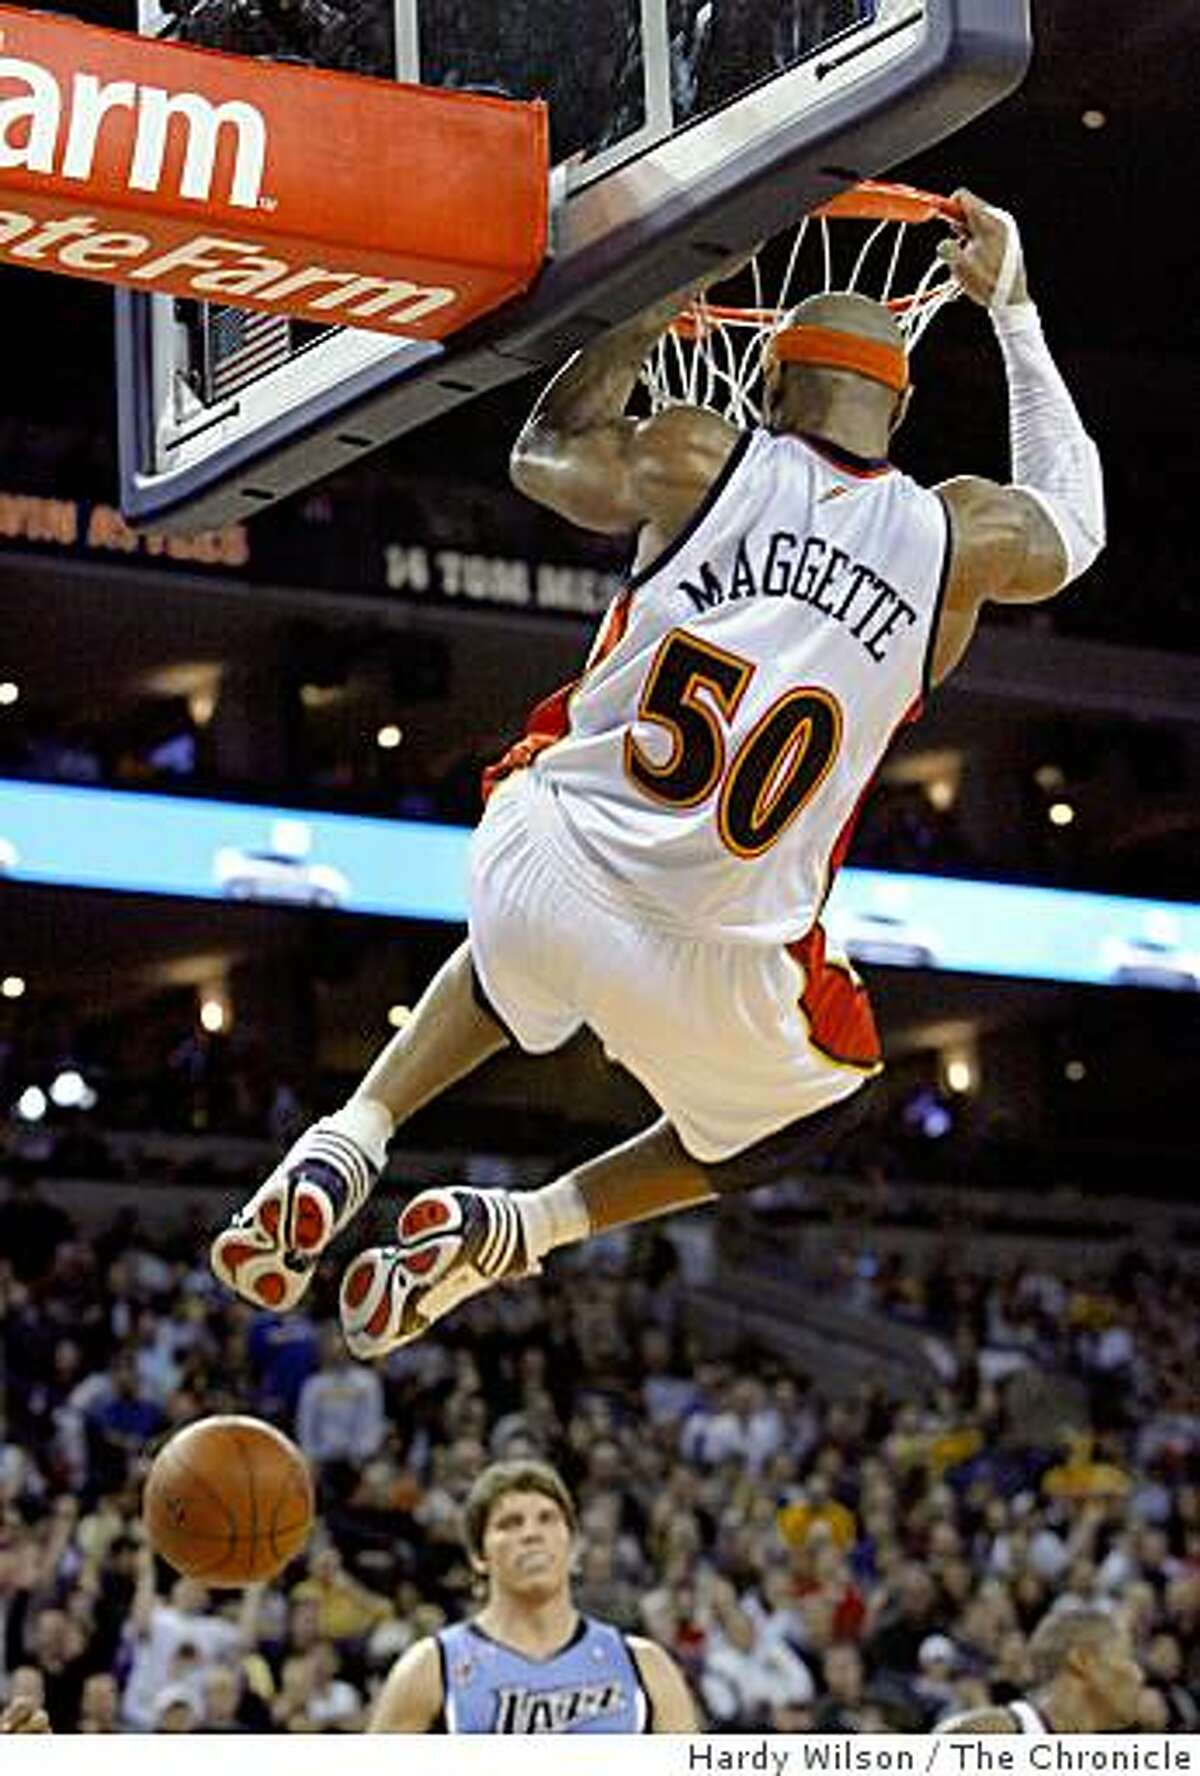 Golden State Warriors forward Corey Maggette (50) dunks the ball against the Utah Jazz during a game at Oracle Arena in Oakland, Calif., on Sunday, March 1, 2009. The Jazz beat the Warriors 112-104.